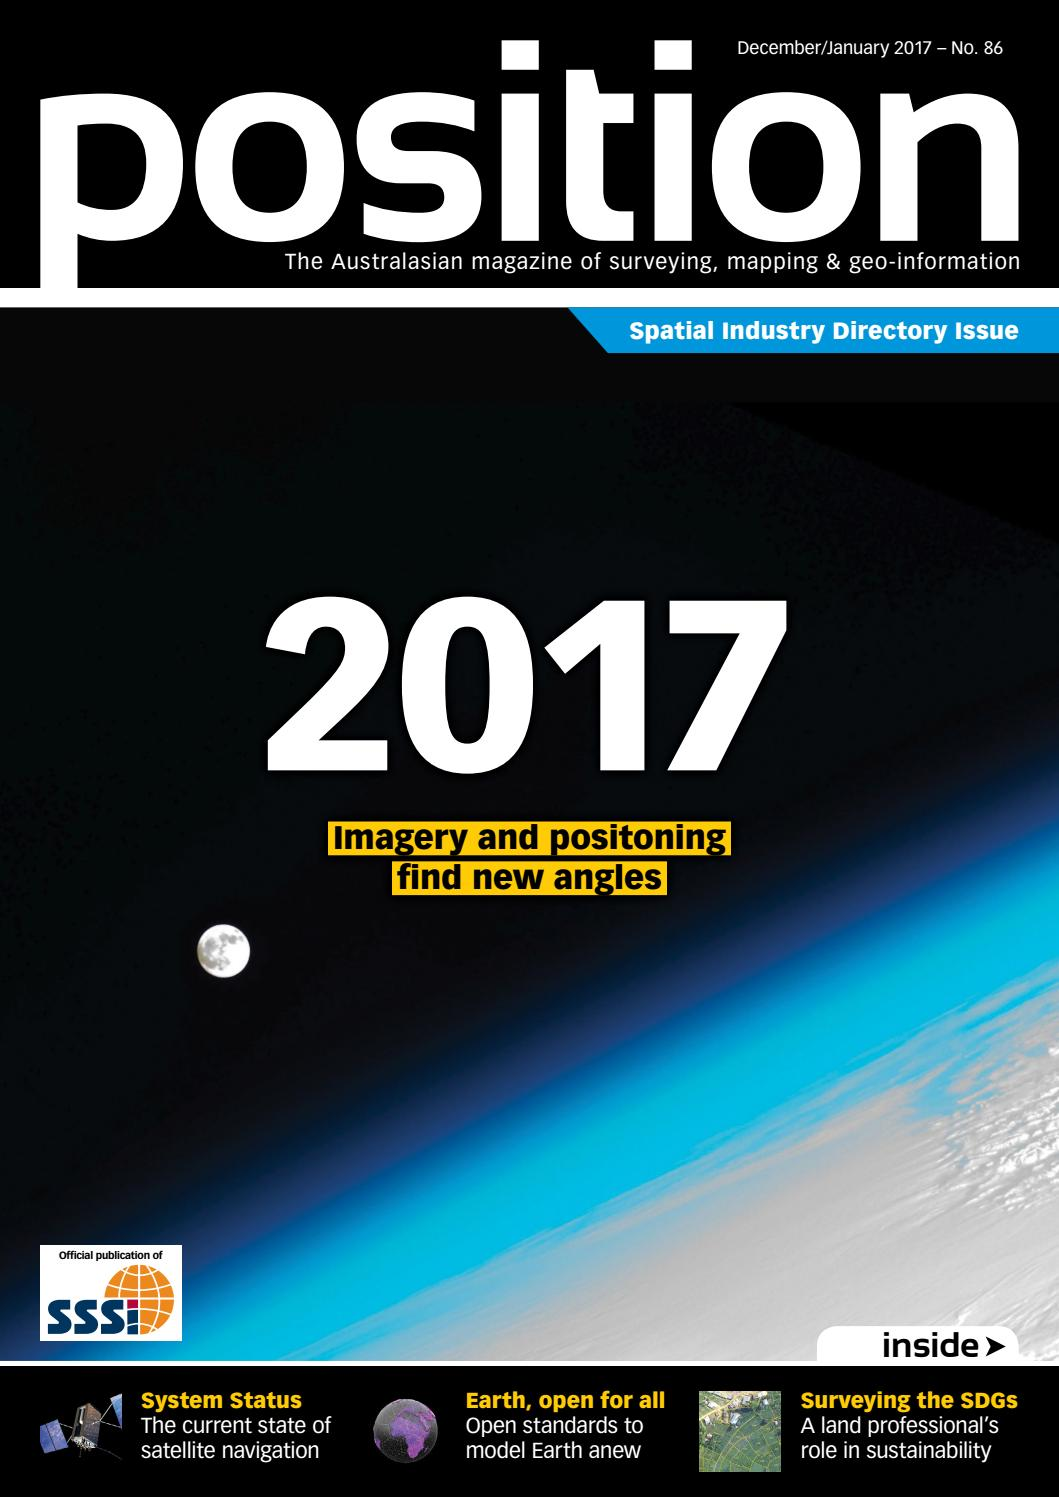 bc7daa941a0 Position issue 86 December-January 2017 by The Intermedia Group - issuu